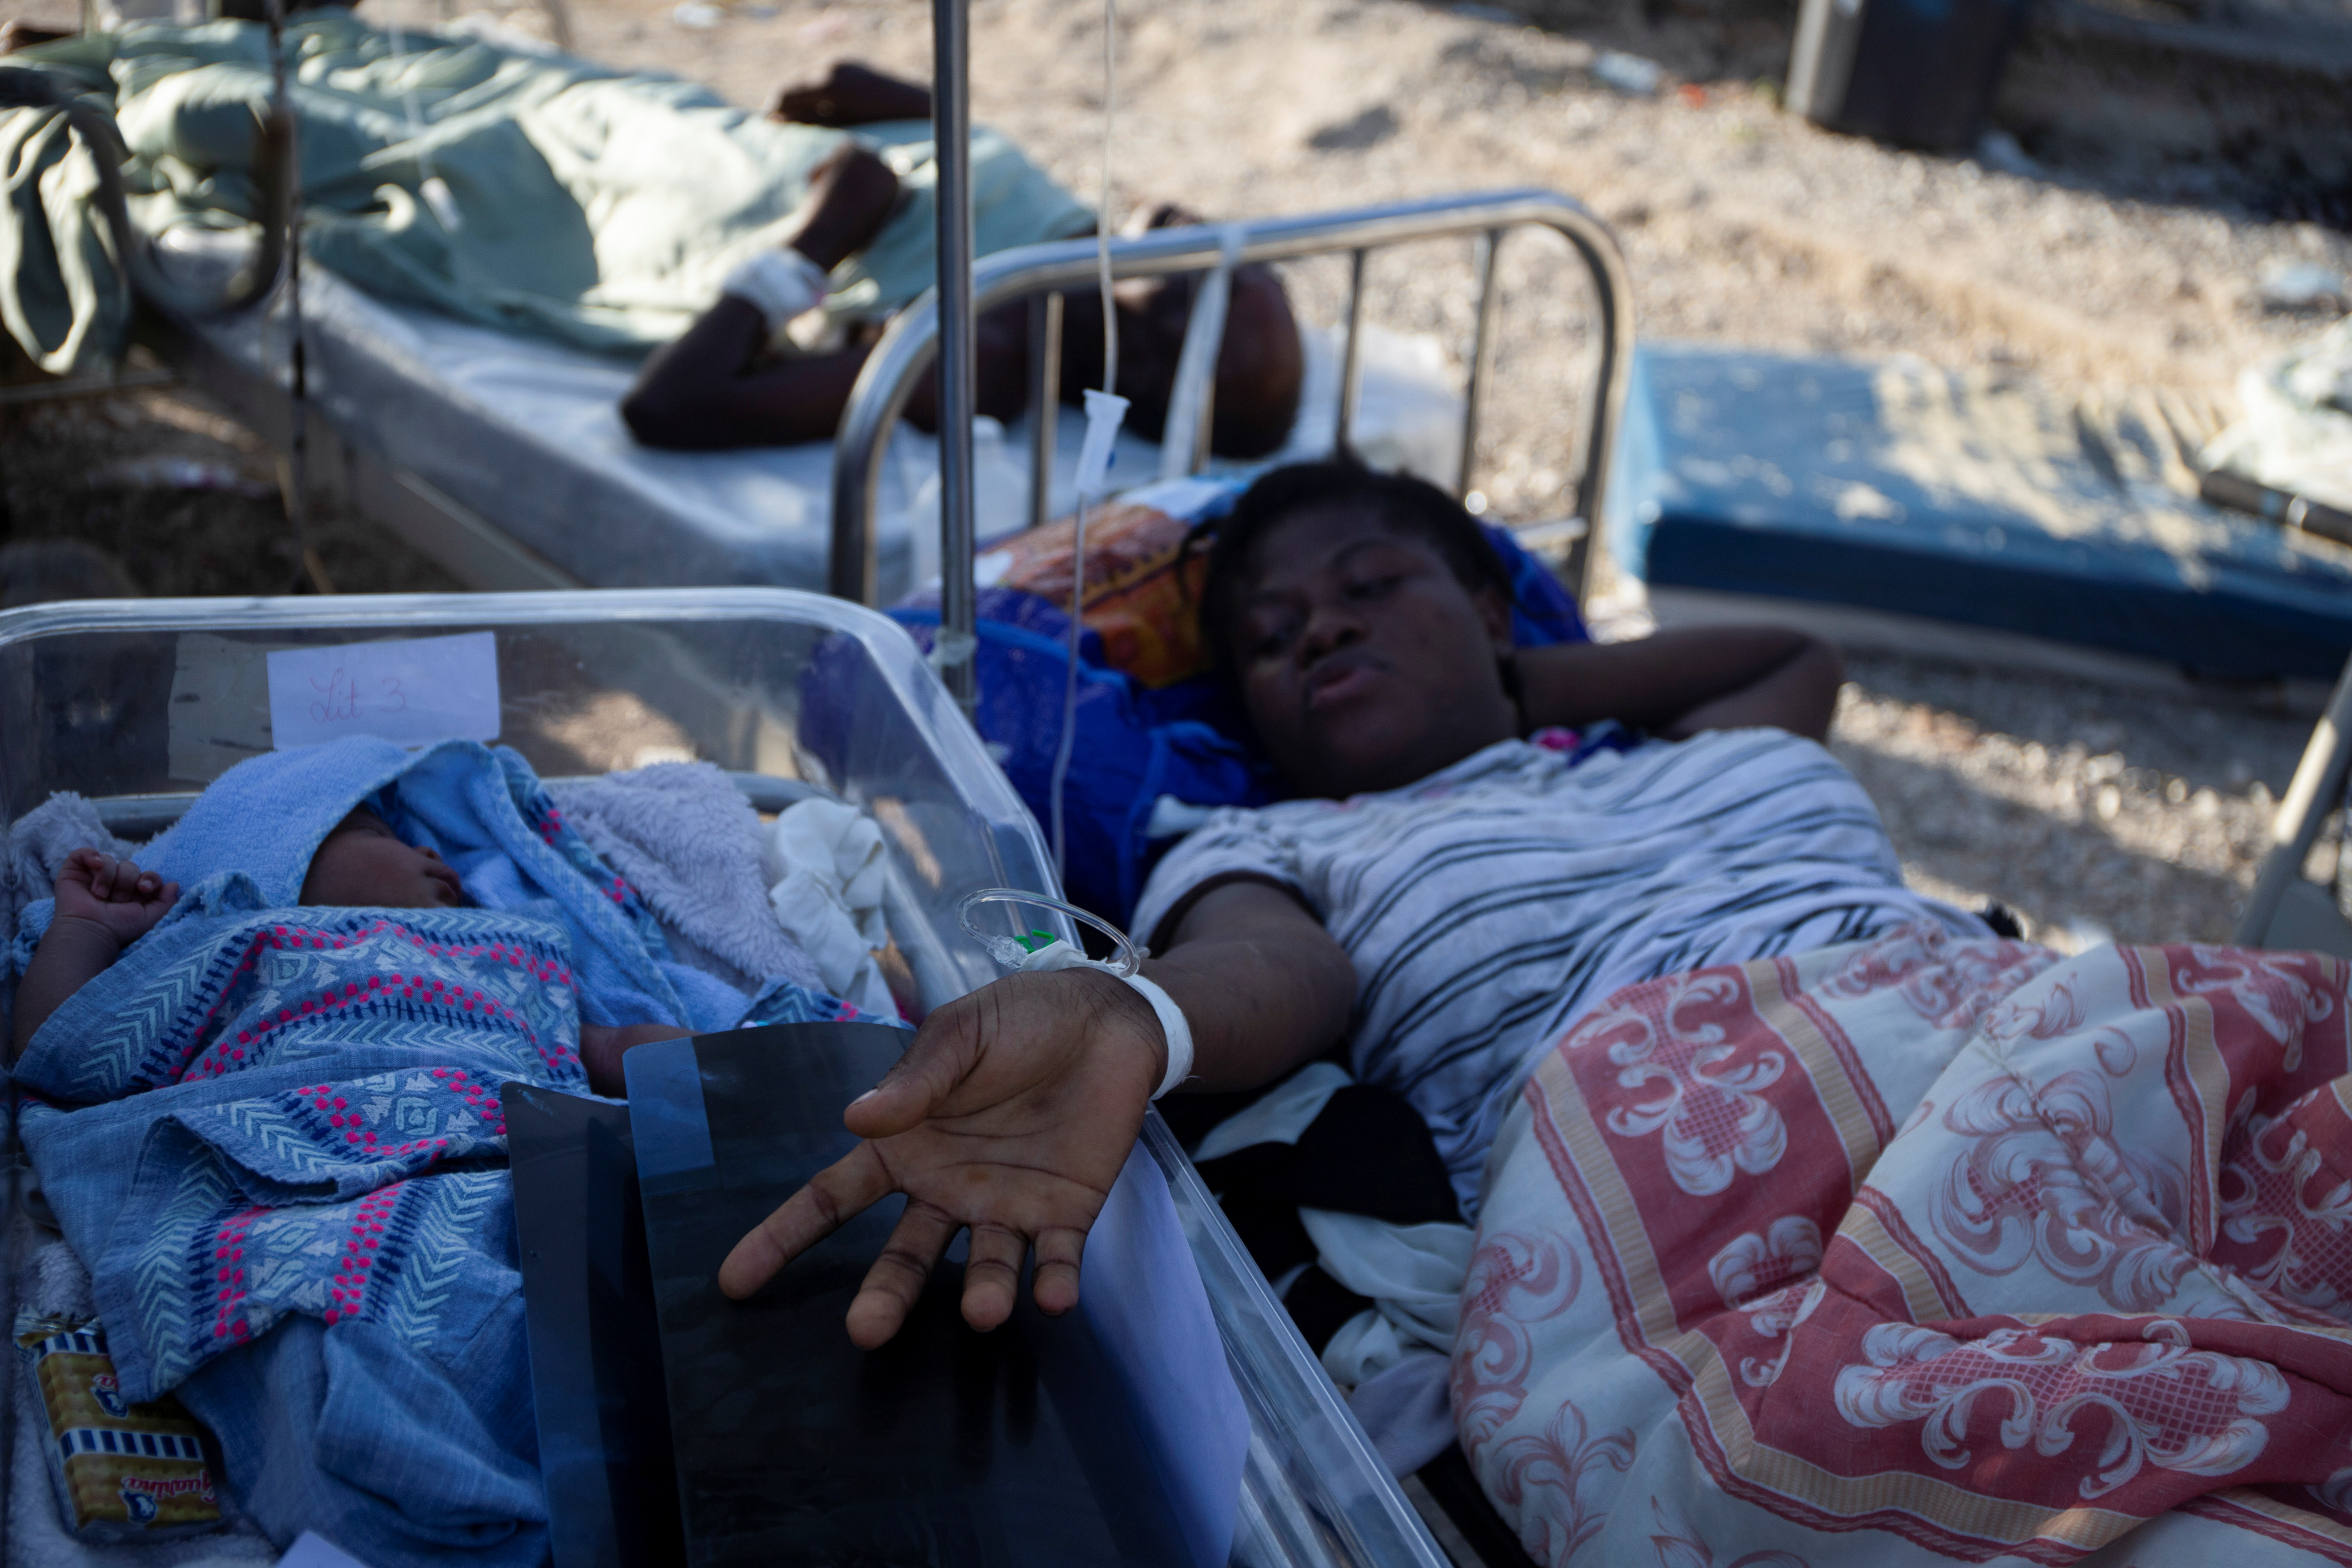 A woman on a stretcher is pictured with a baby after a 7.2 magnitude earthquake in Les Cayes, Haiti August 15, 2021.  REUTERS/Estailove St-Val